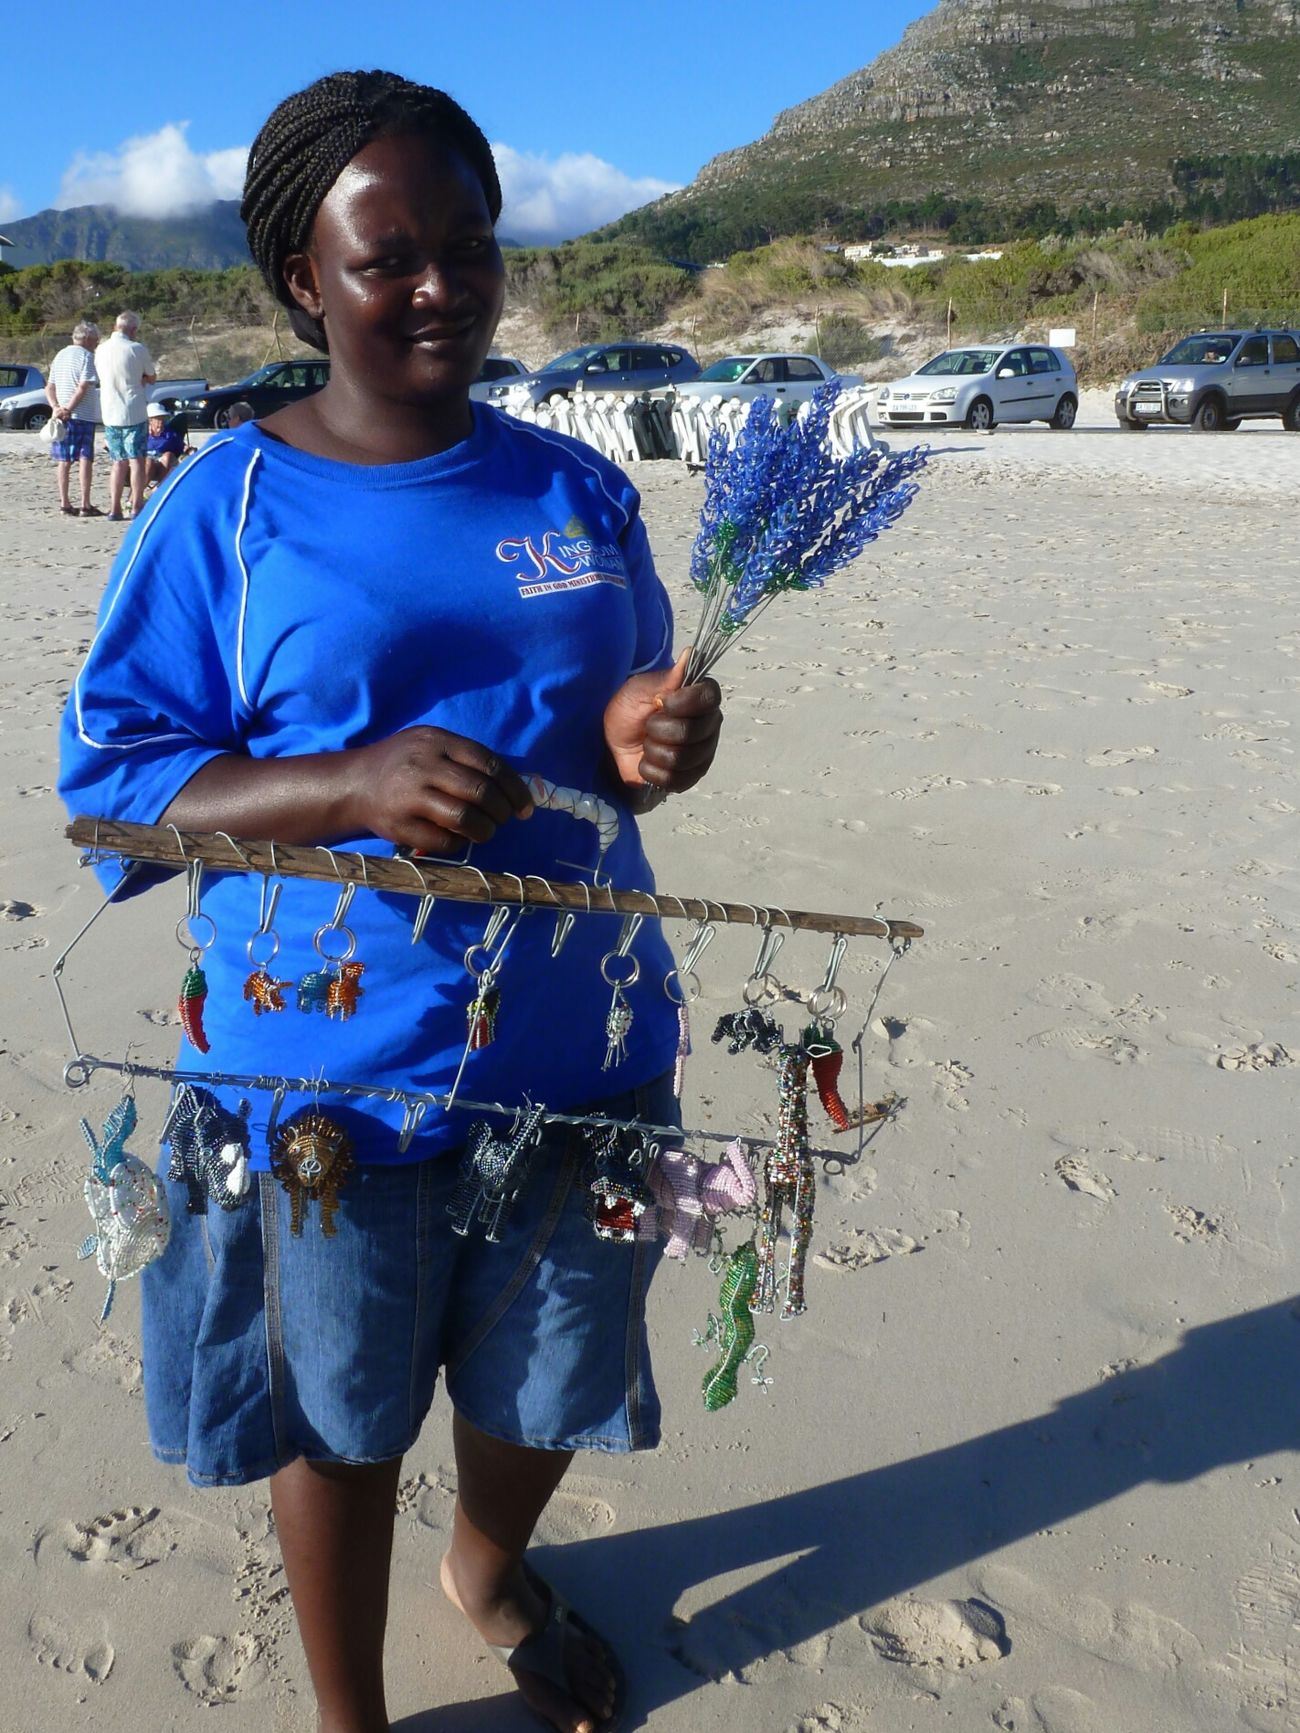 People Of The Oceans Check This Out Beach Life Beach Photography Ocean Beach Hout Bay Beach Hout Bay South African Woman Selling At The Beach Oceanside Blue Color Blue Clothes Blue Flowers Blue Natural Light Portrait Eye For Photography On The Way People And Places light and reflection waiting game Miles Away Women Around The World